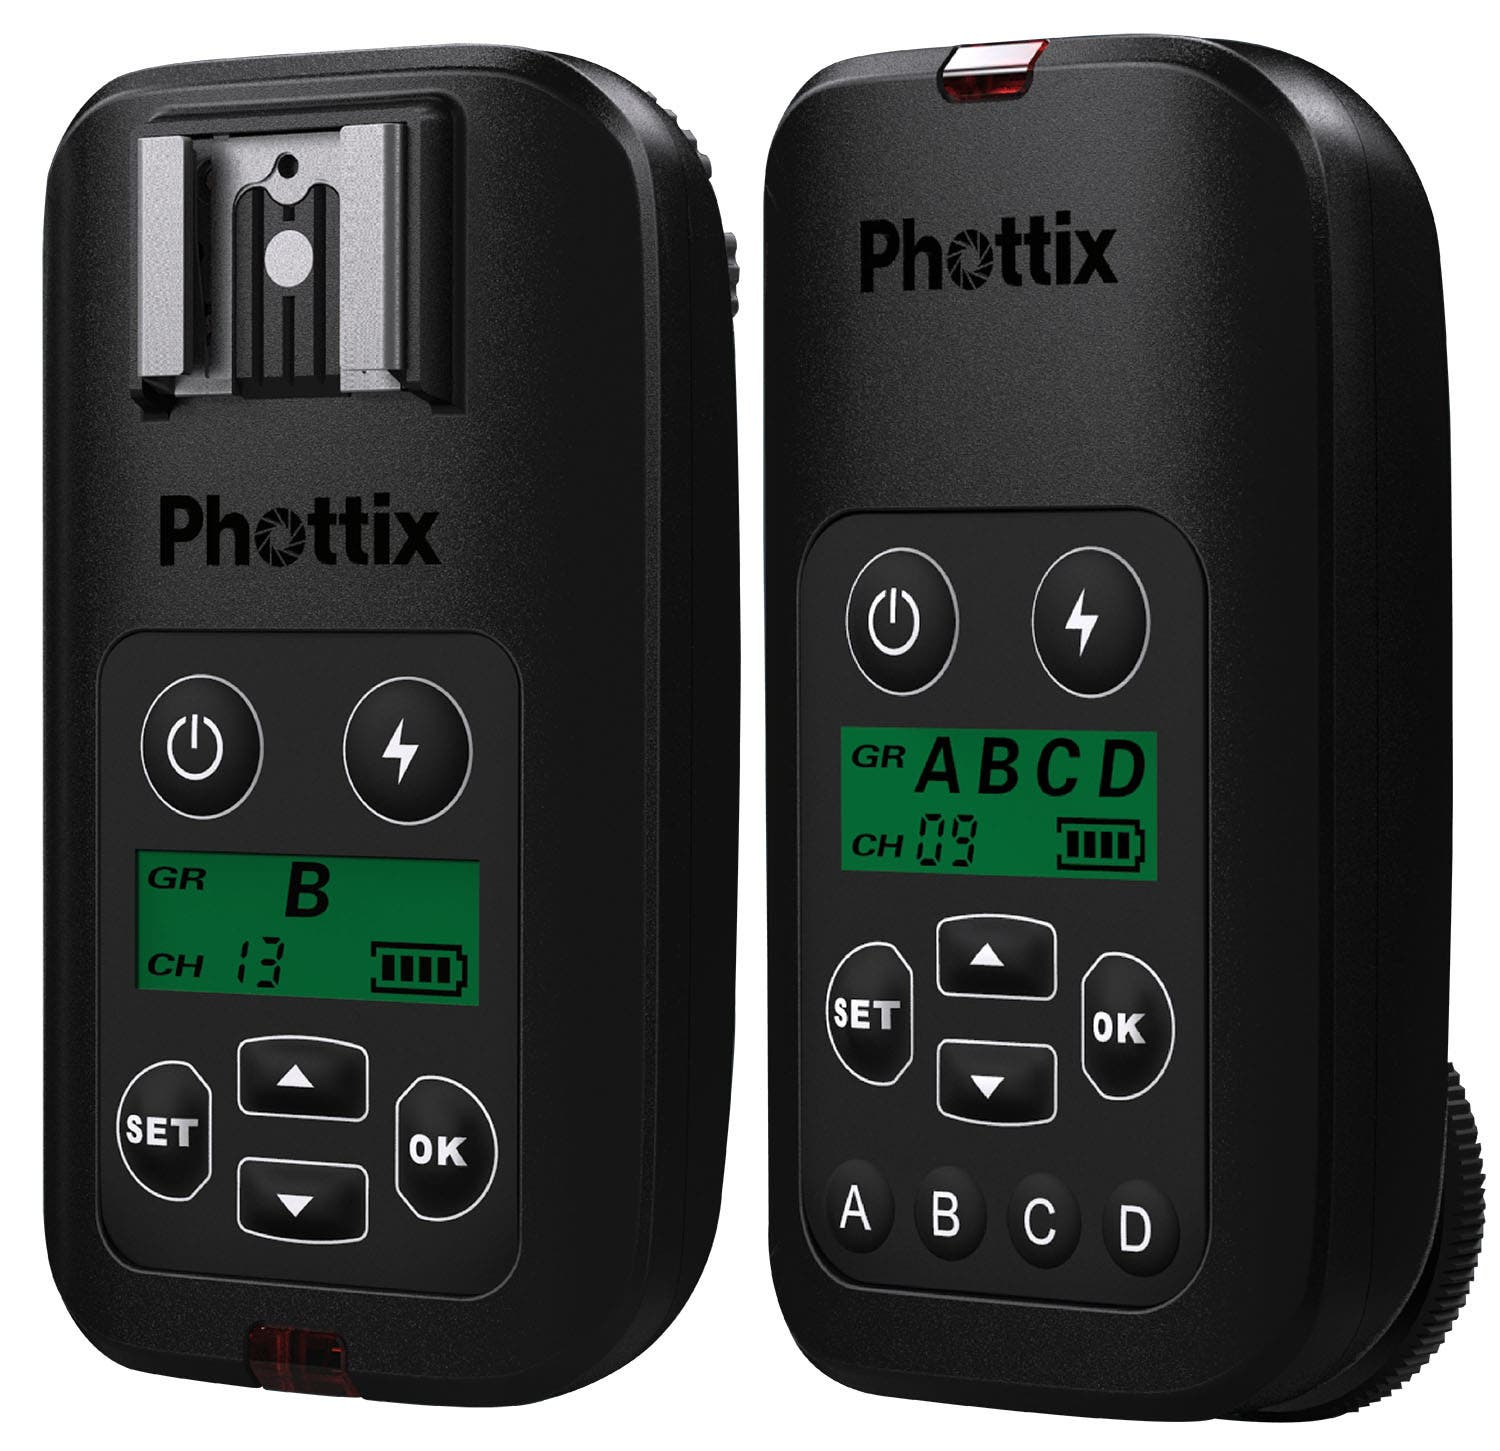 Phottix Triton II Flash Trigger Works With 16 Channels